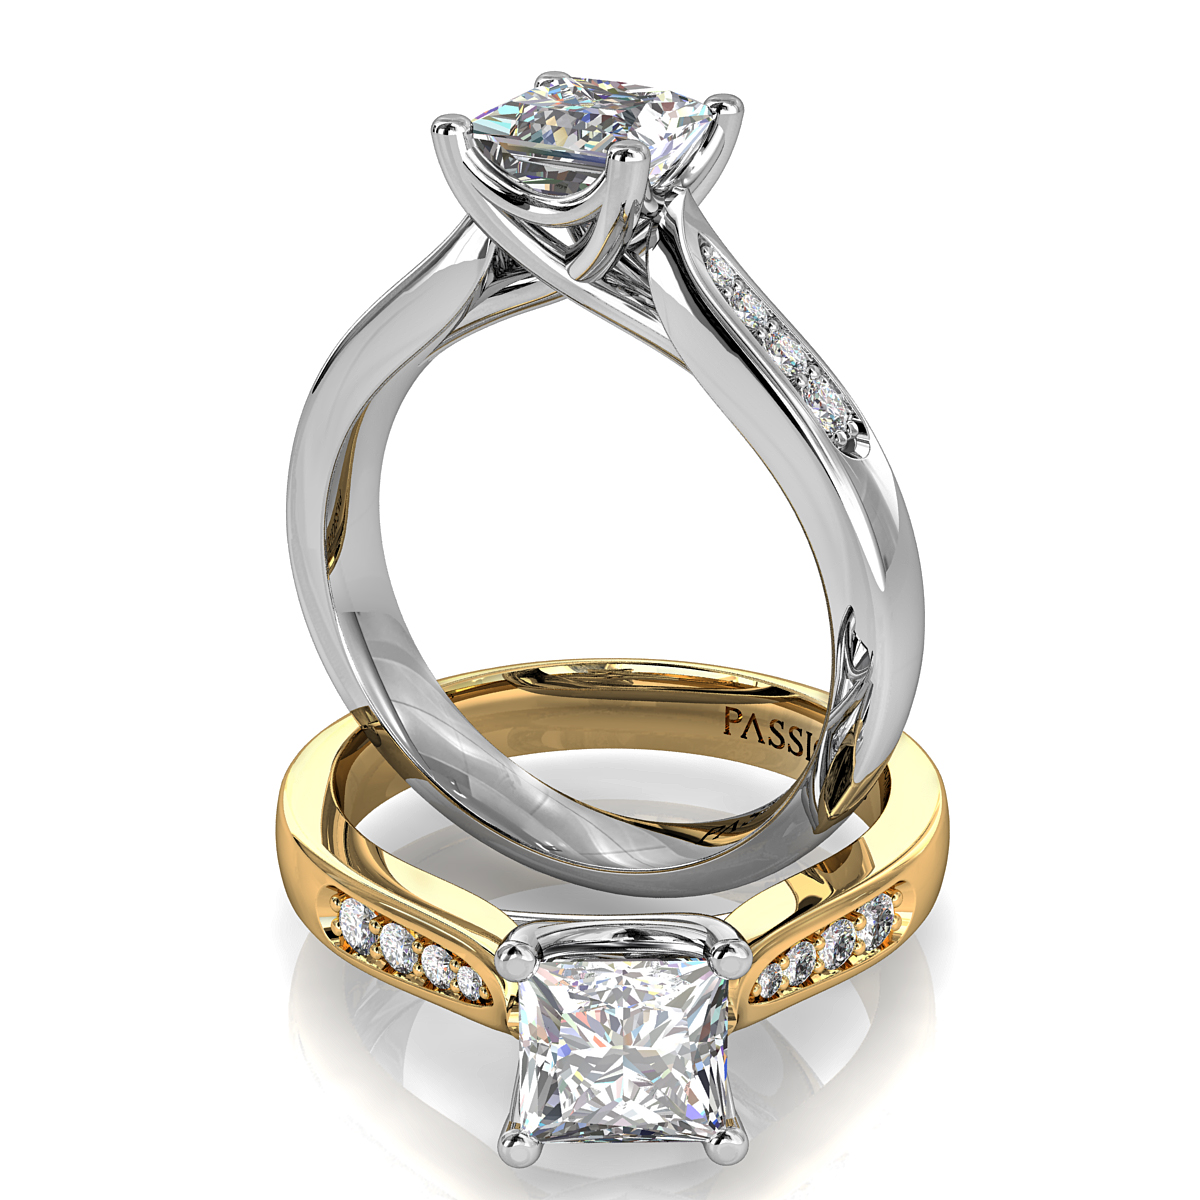 Princess Cut Solitaire Diamond Engagement Ring, 4 Claw Set on a Bead Set Band with an Undersweep Setting.